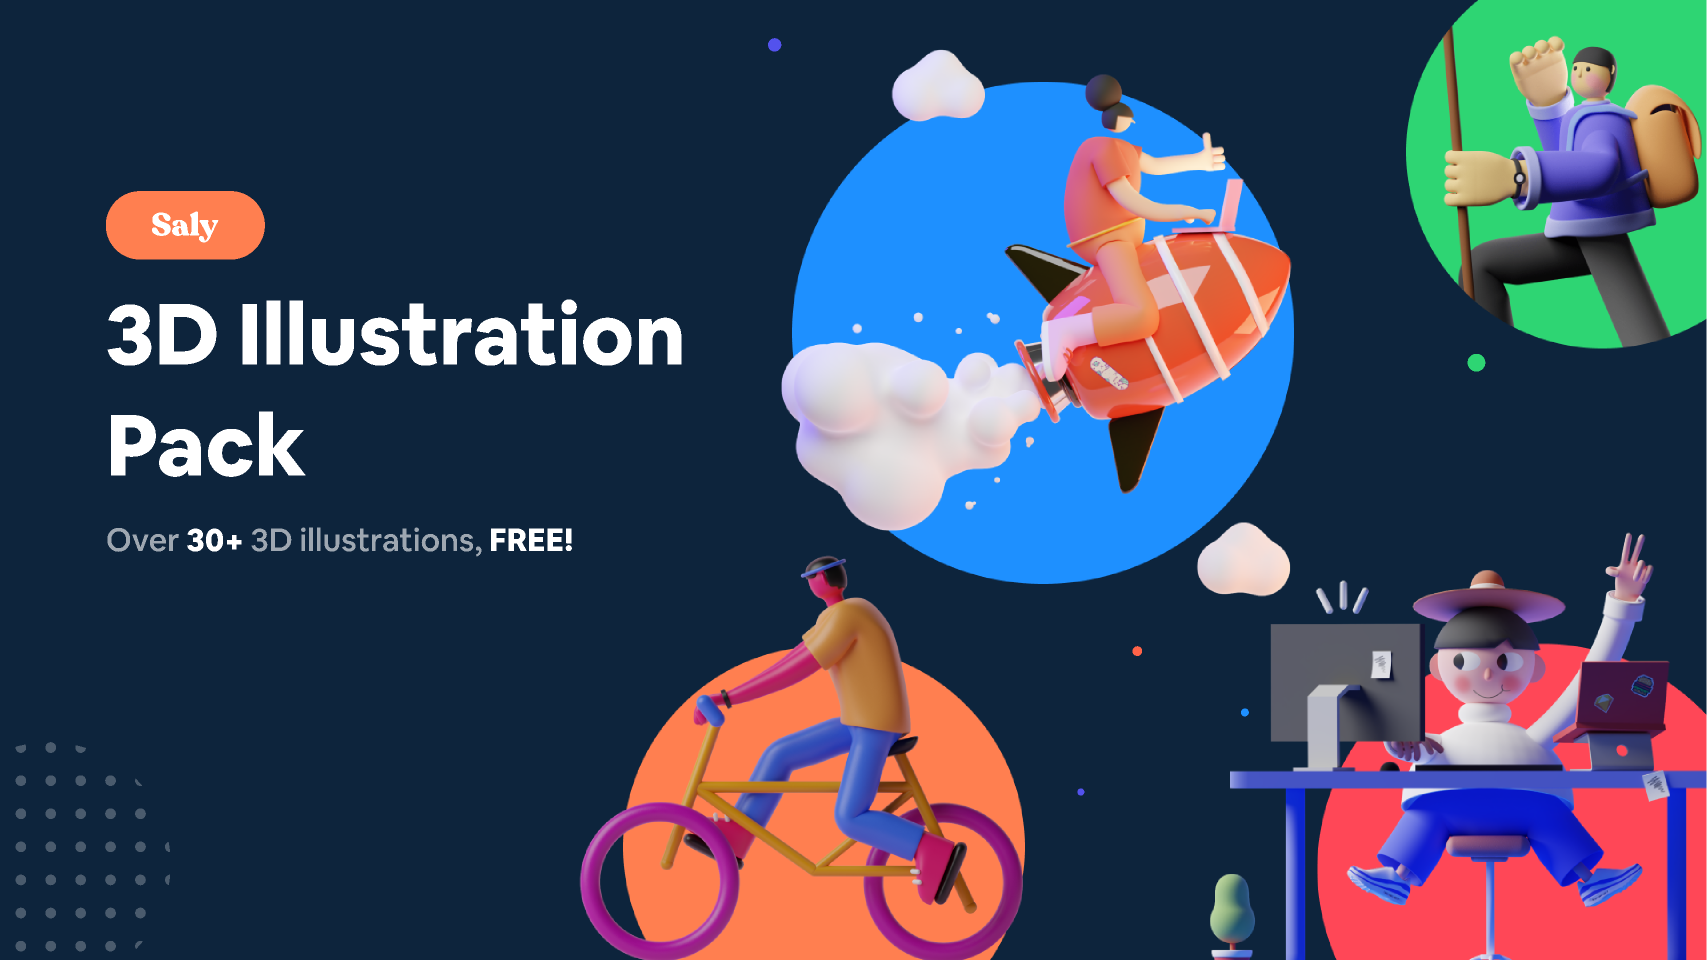 SALY - 3D Illustration Pack from UIGarage